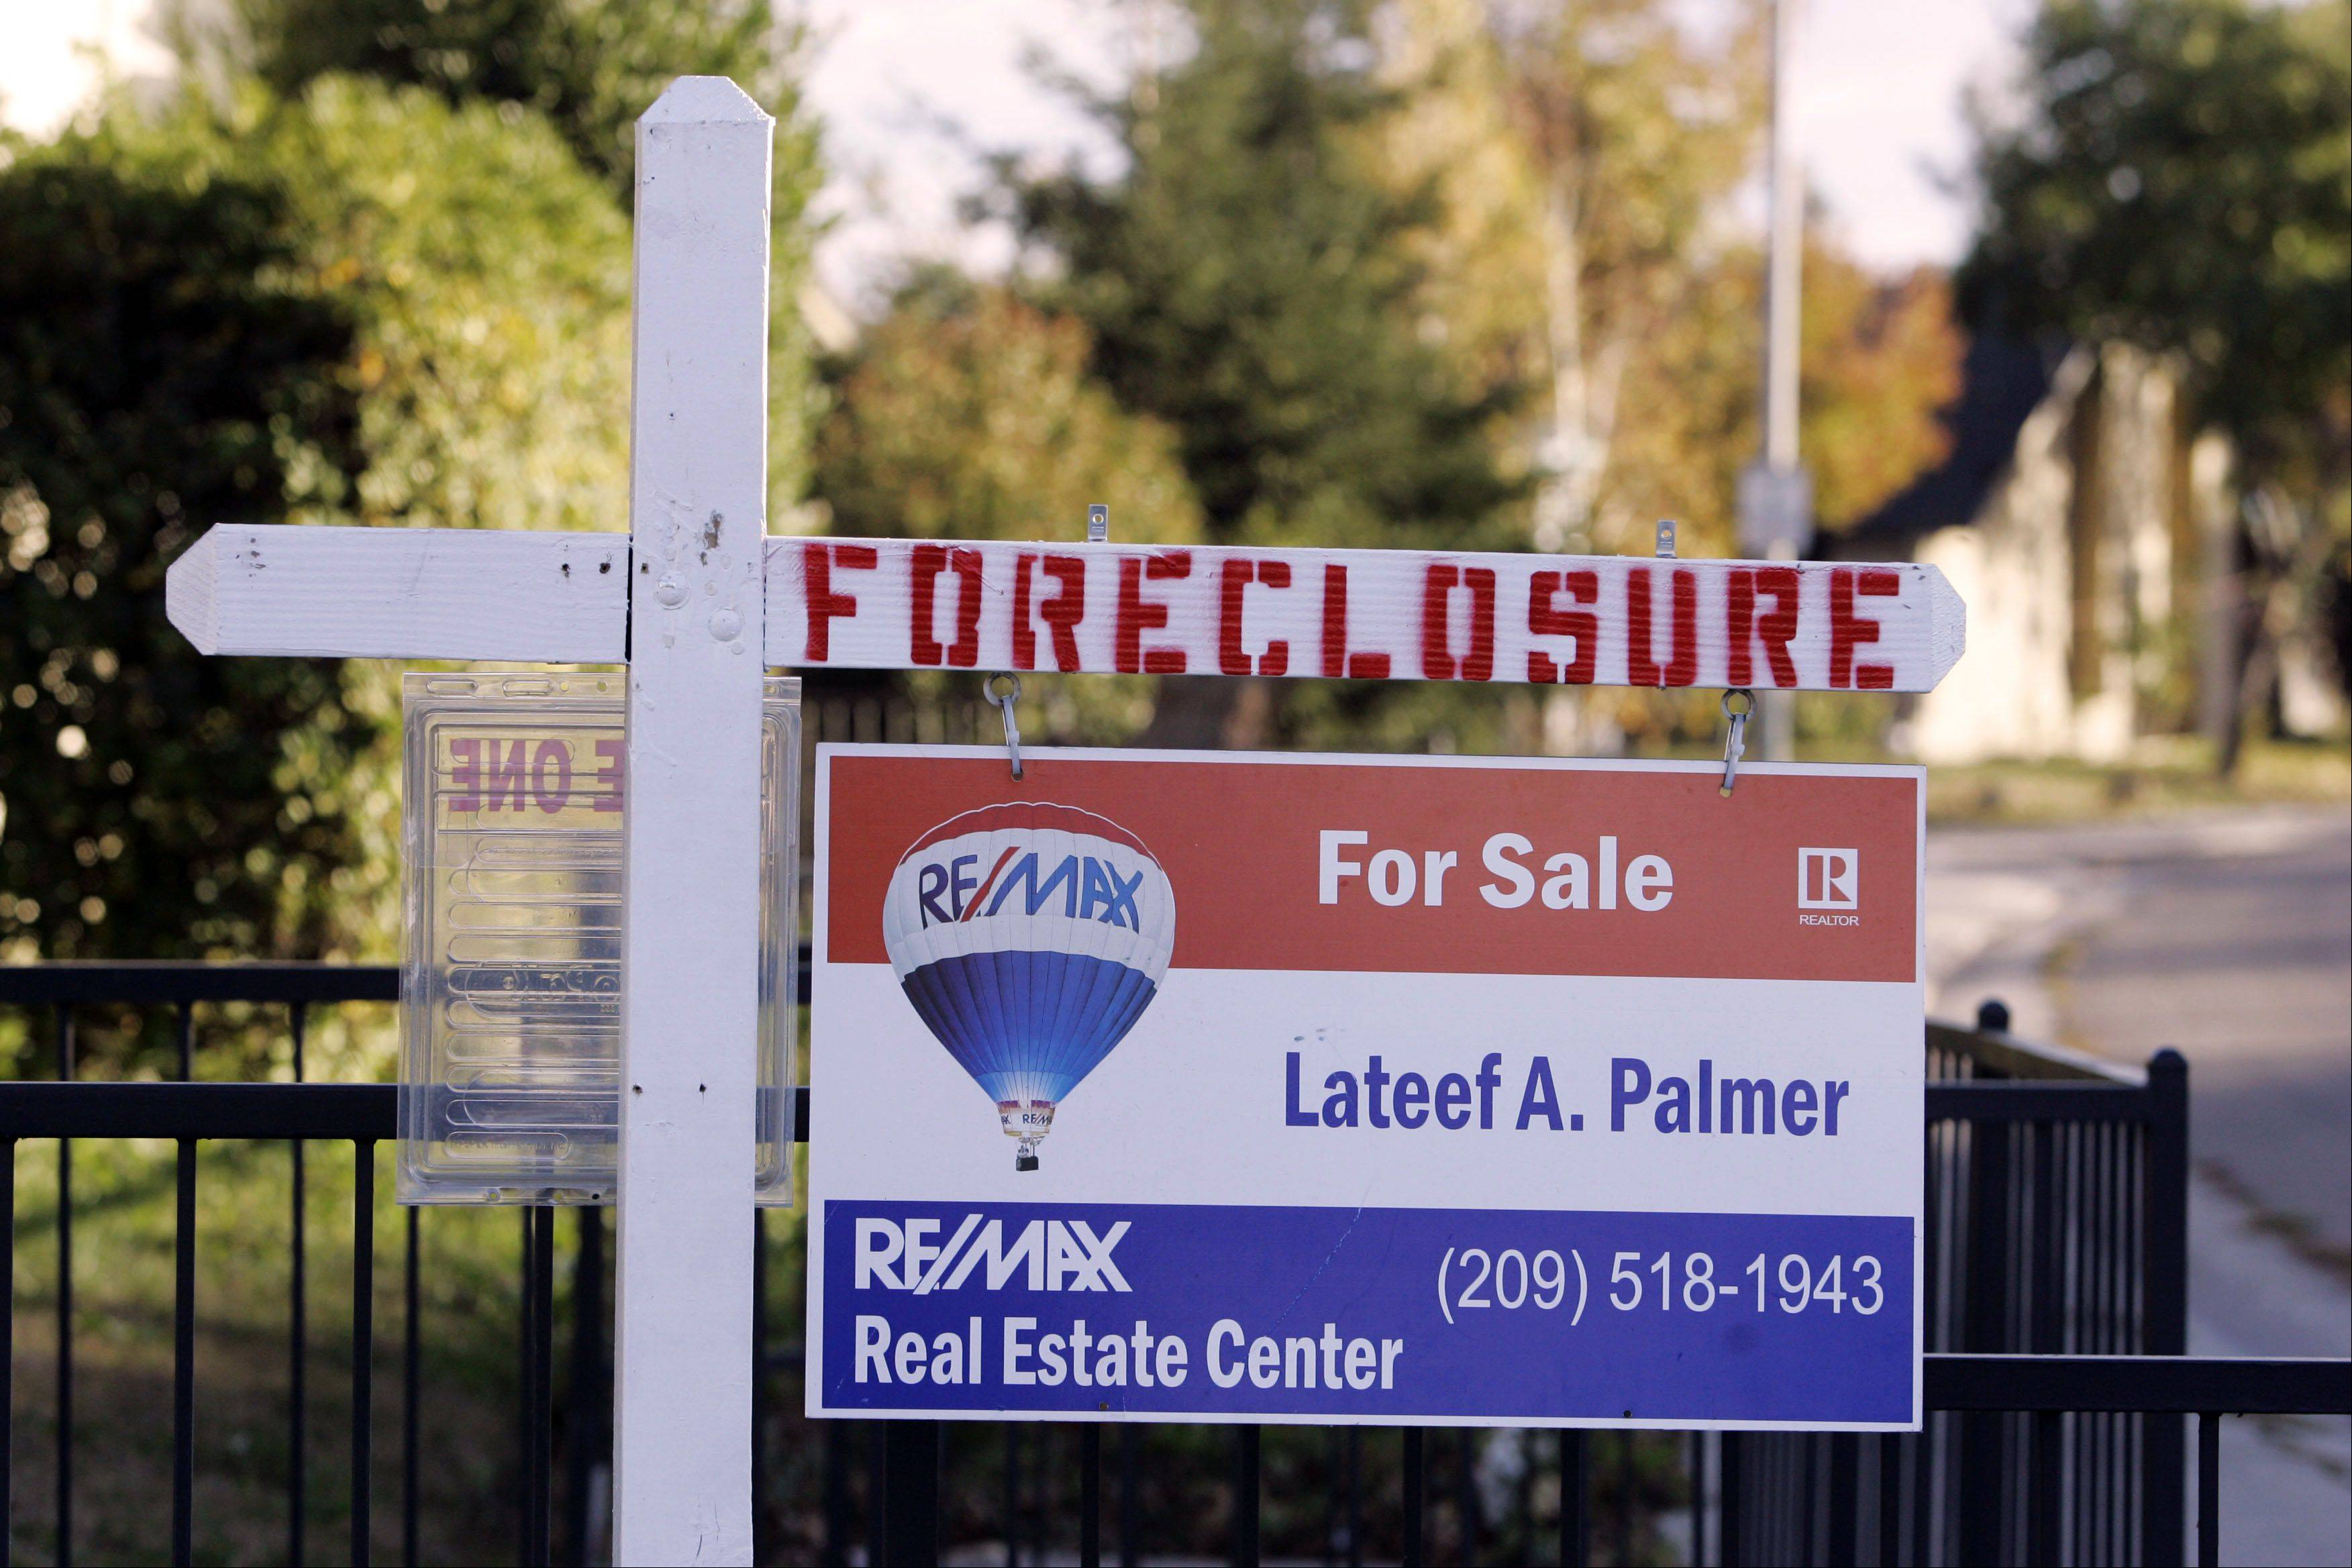 Fewer U.S. homes are completing the foreclosure process and ending up repossessed by banks because investors are increasingly buying up properties when they go on sale at public auction. The trend reflects a growing appetite among investors for buying homes before they exit the foreclosure process and end up on the market.